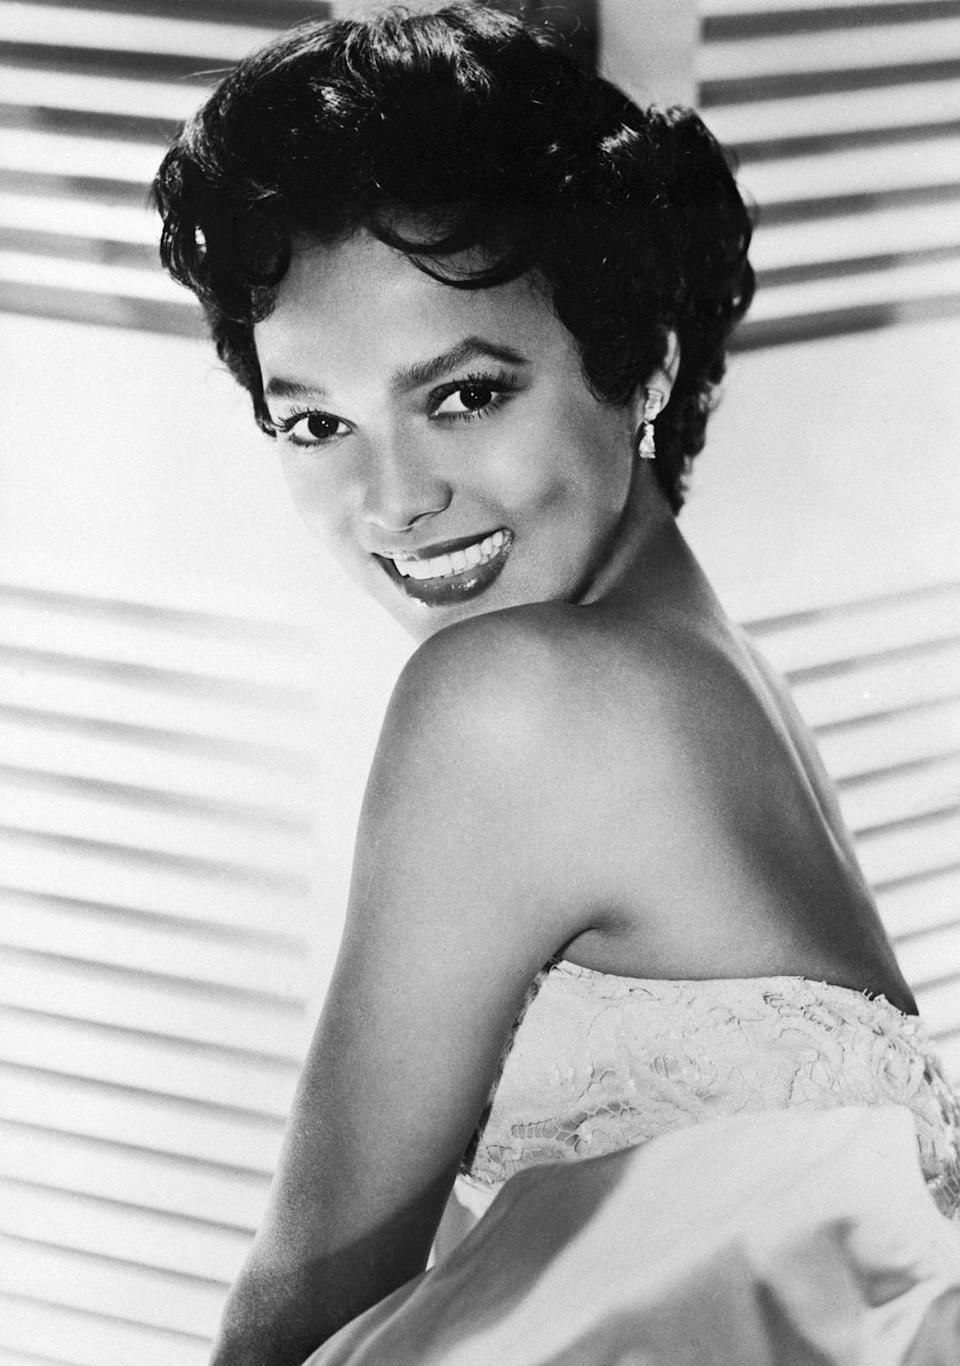 <p>Despite her relatively short time in the spotlight, Dandridge has had a lasting impact on Hollywood. In 1999, the film <em>Introducing Dorothy Dandridge,</em> starring Halle Berry, brought awareness to the life of the singer-actress and the adversity she faced in the industry.</p>